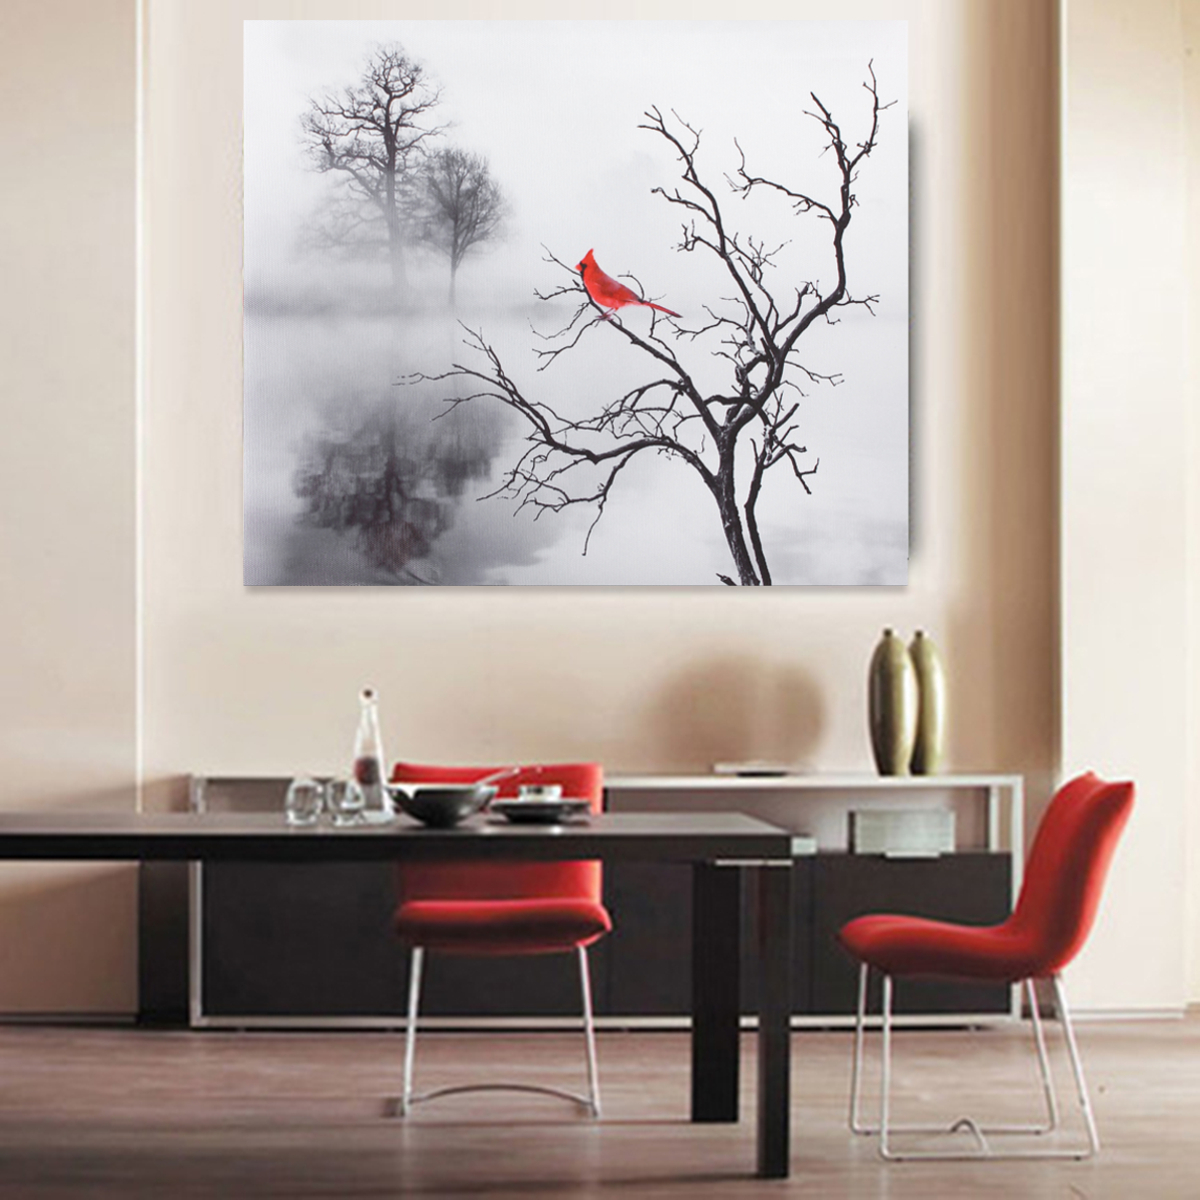 Red Cardinal Bird Home Decor Wall Art Photo Print Bu0026W Bedroom Bathroom  Picture (no Frame